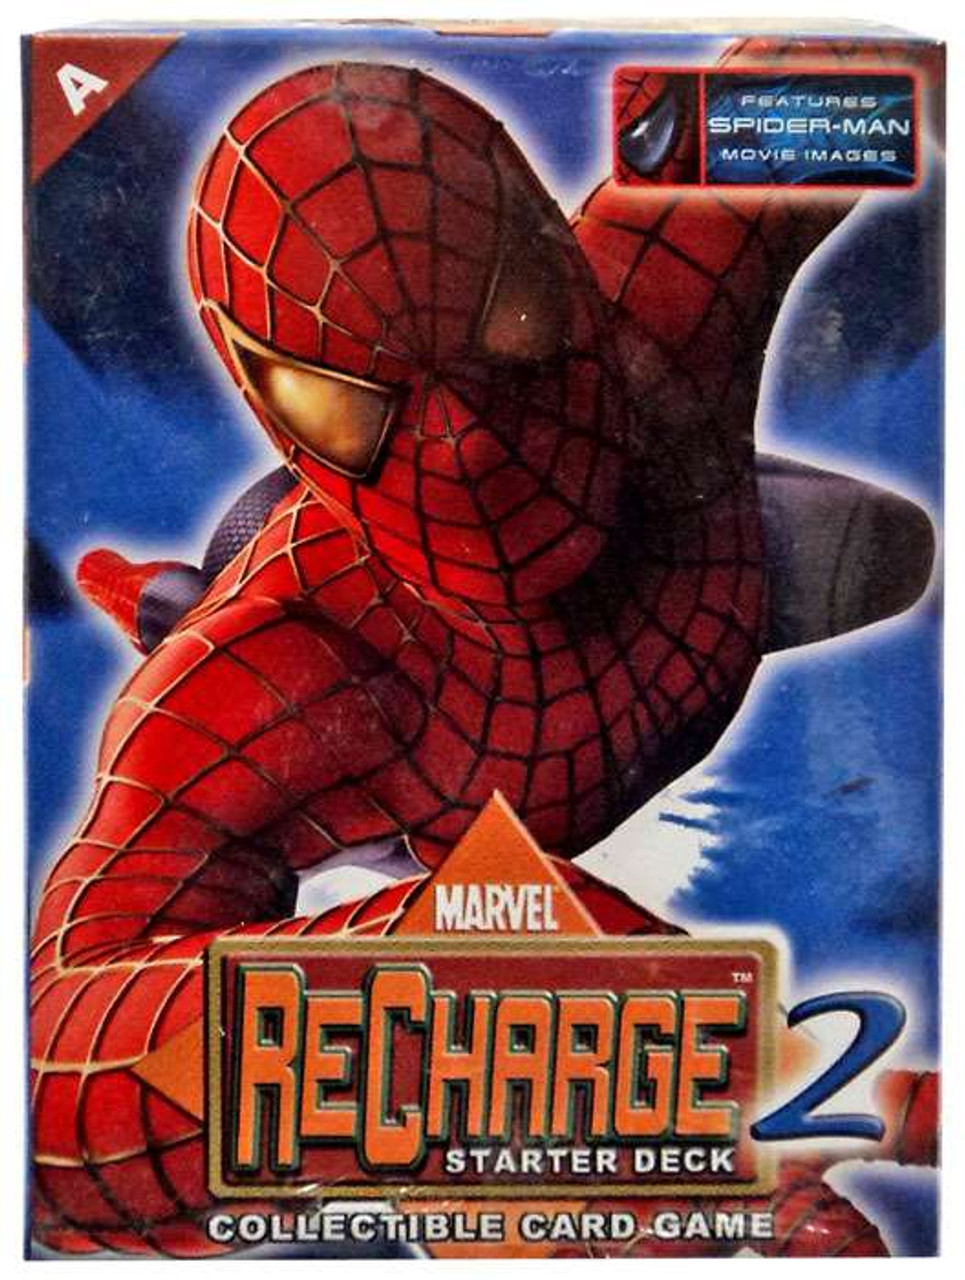 Marvel Collectible Card Game Recharge 2 Spider Man Starter Deck